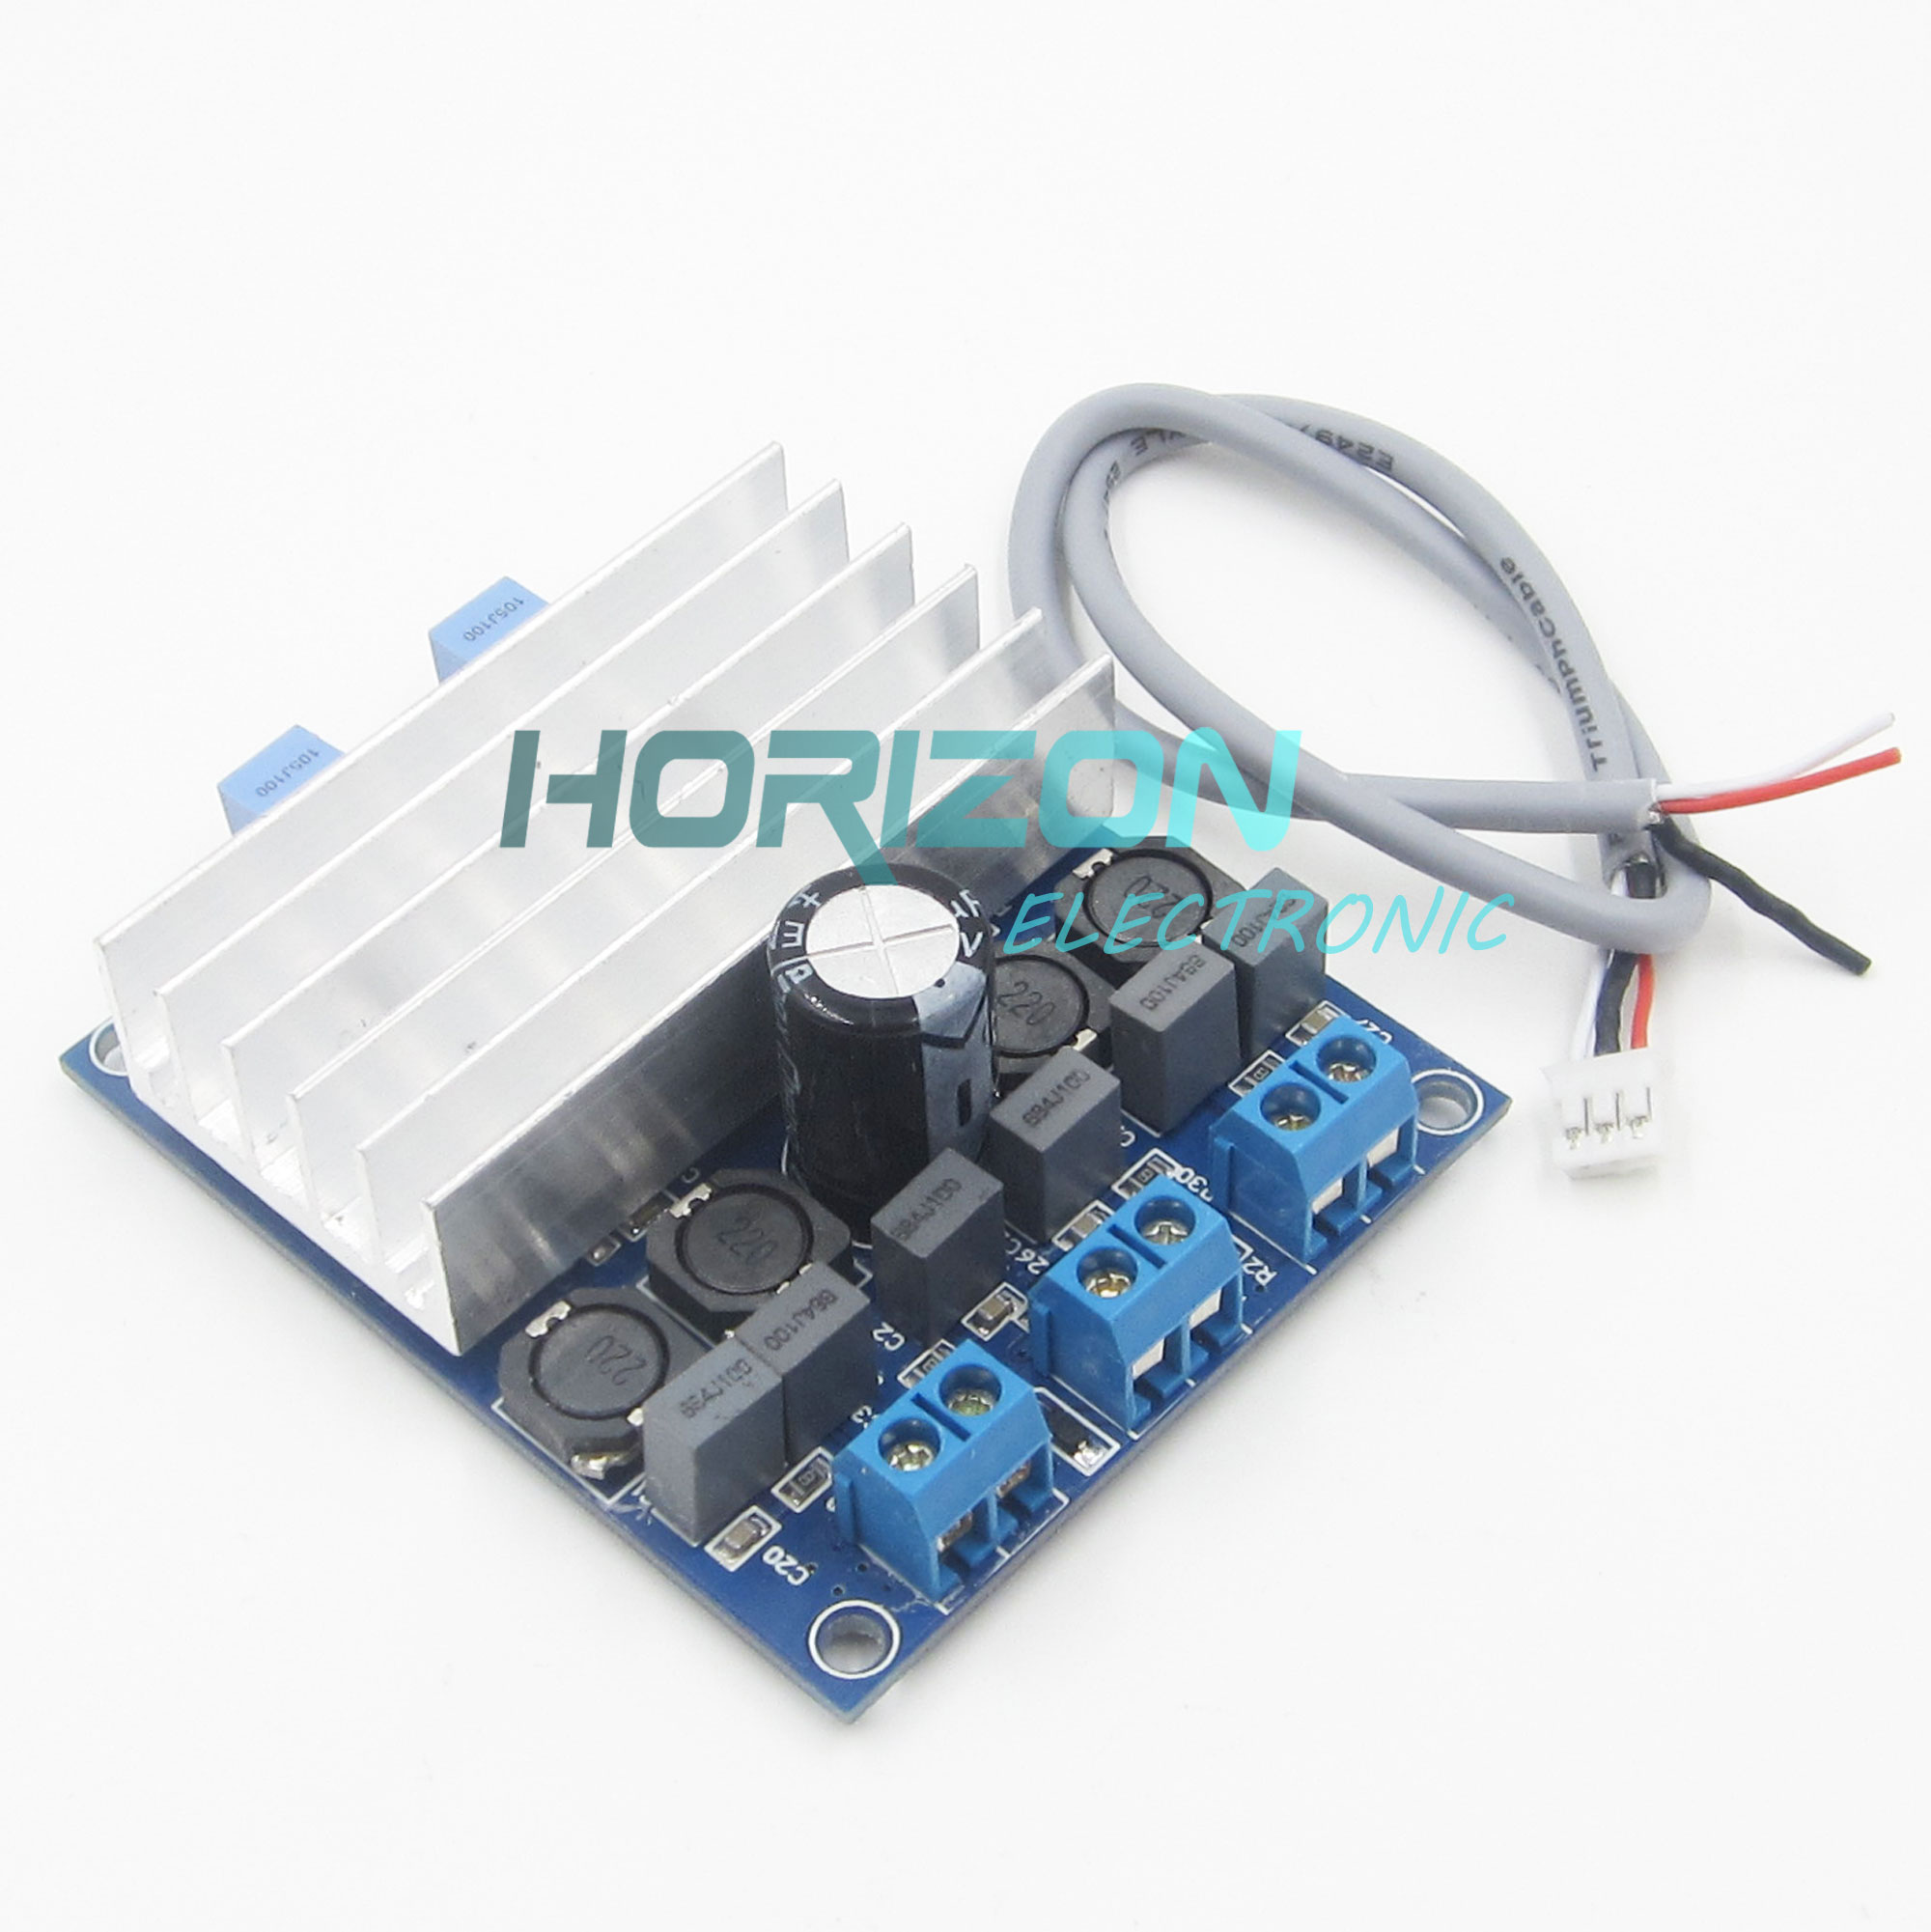 2 X 50w Tda7492 D Class High Power Digital Amplifier Board Amp Audio Circuit Blue Silver Radiator In Smart Remote Control From Consumer Electronics On Alibaba